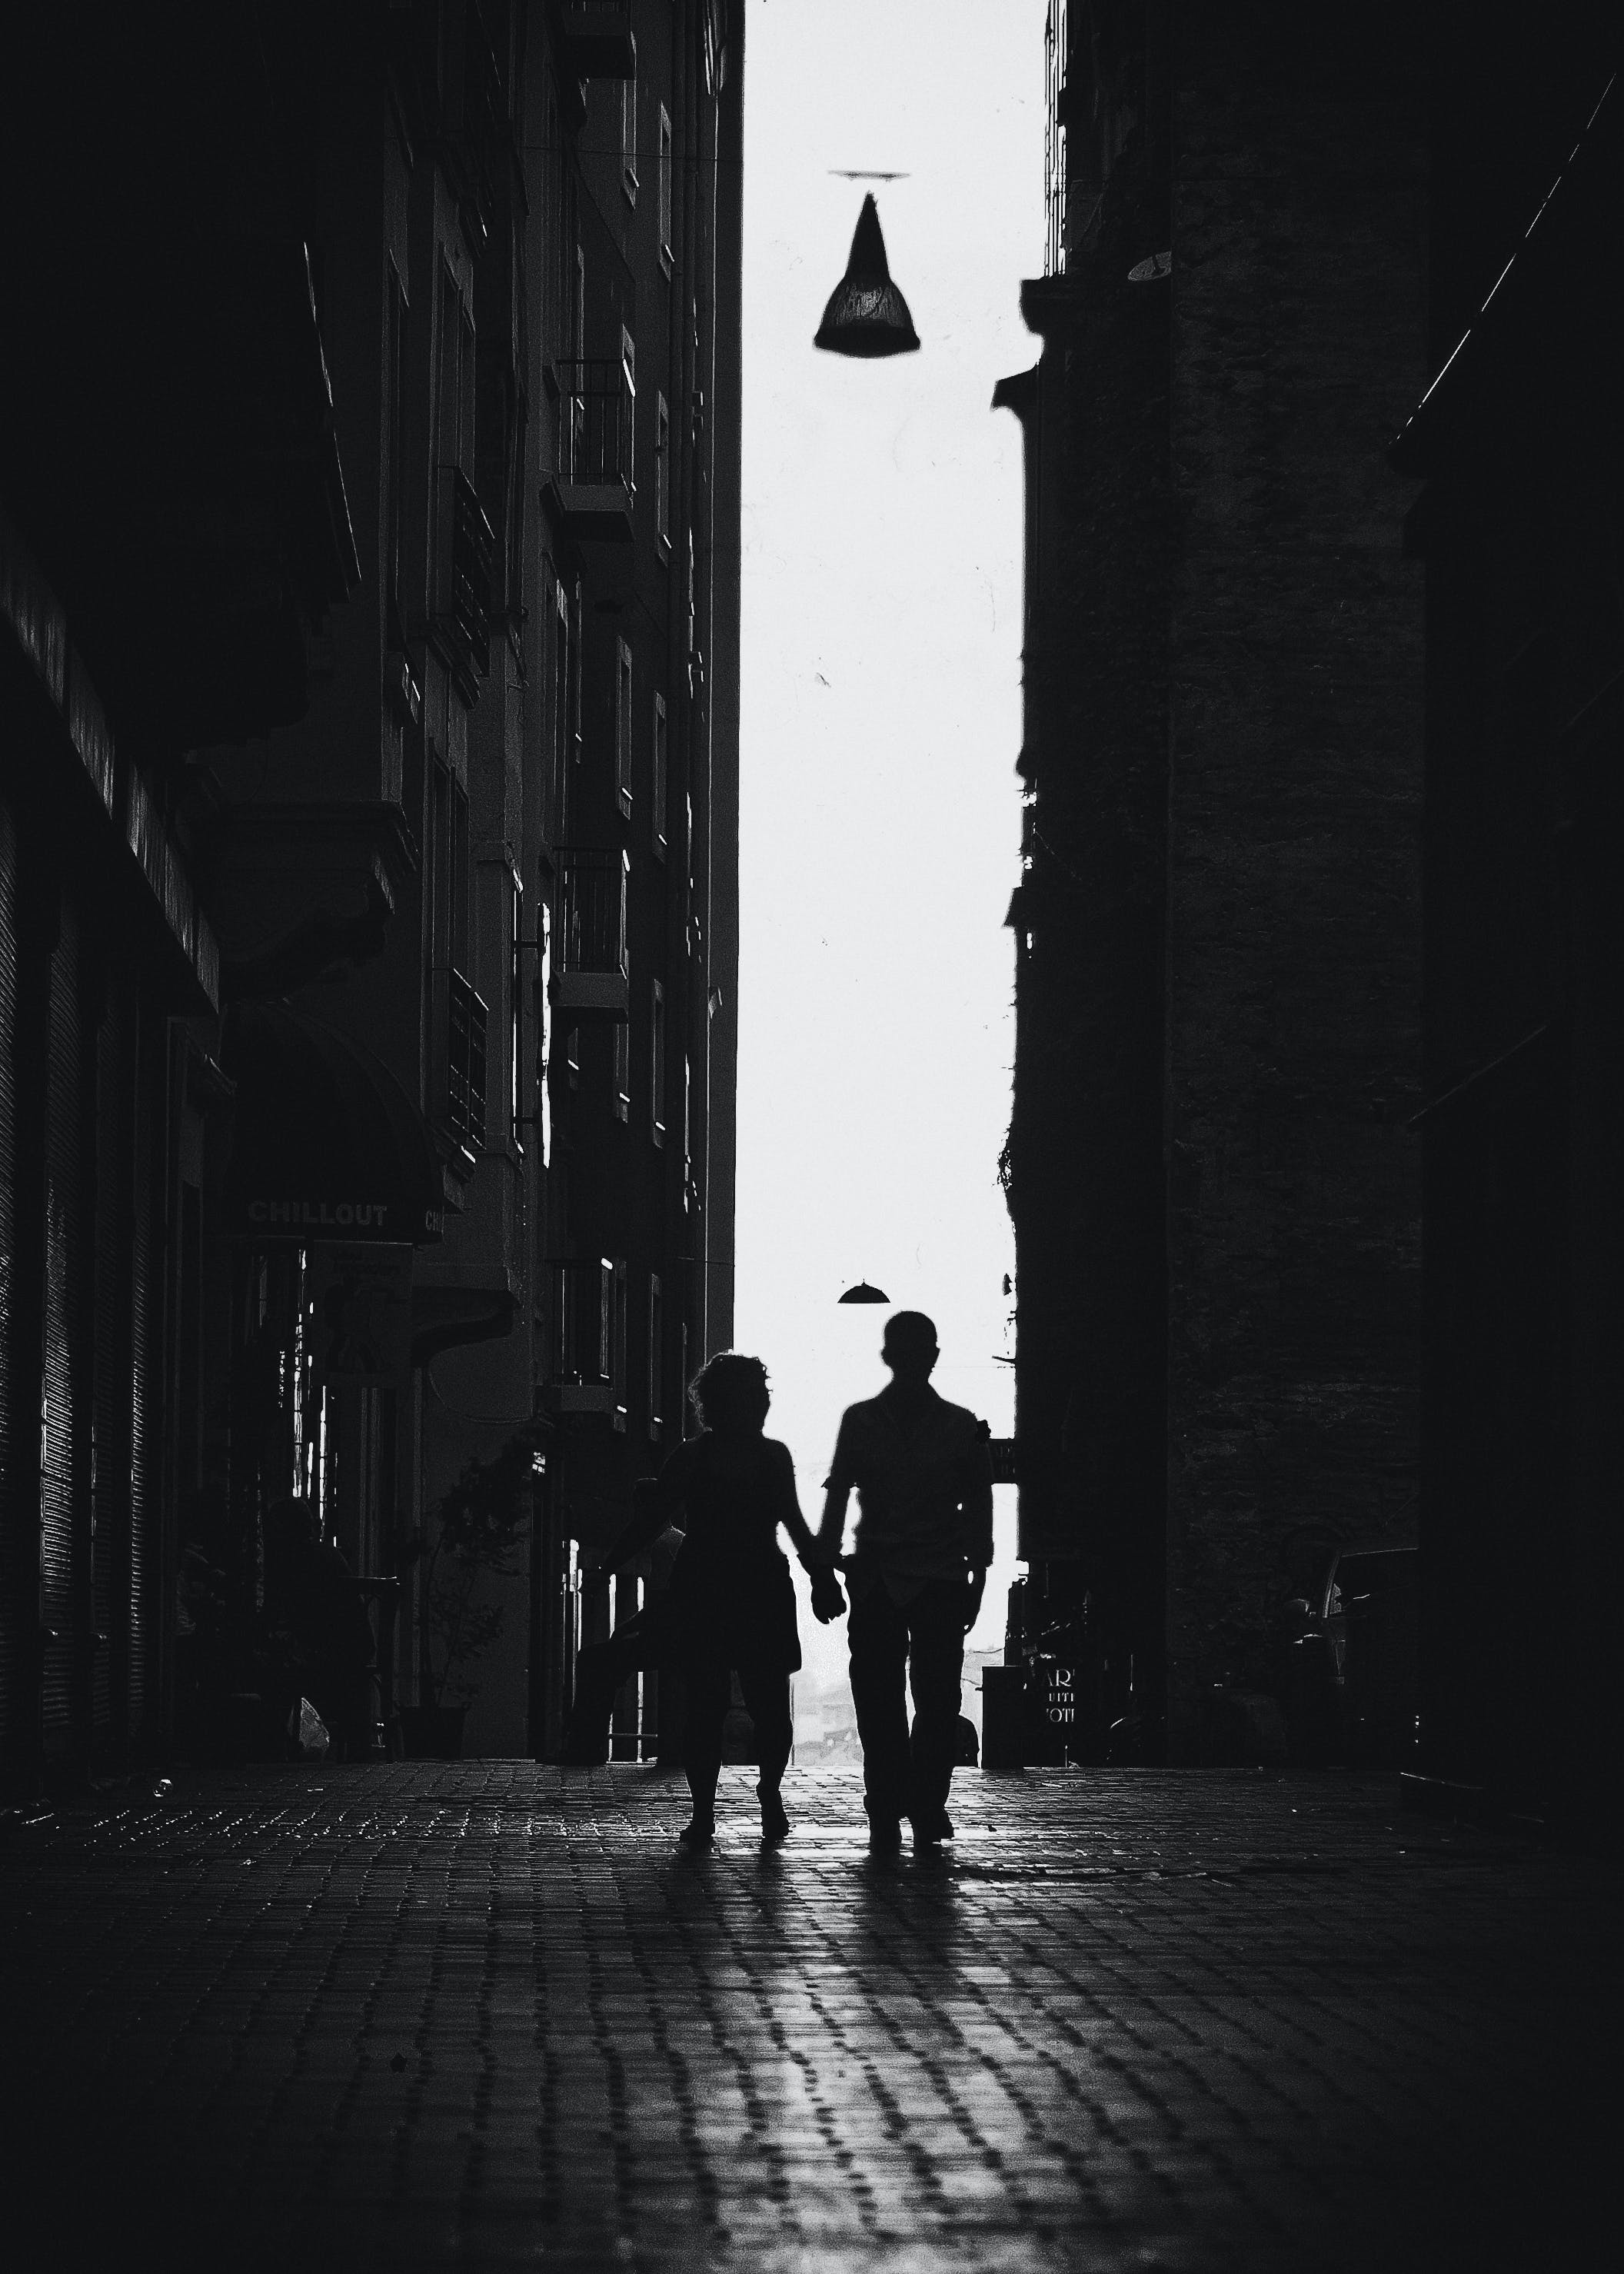 Photo Of Man And Woman Walking In Alley